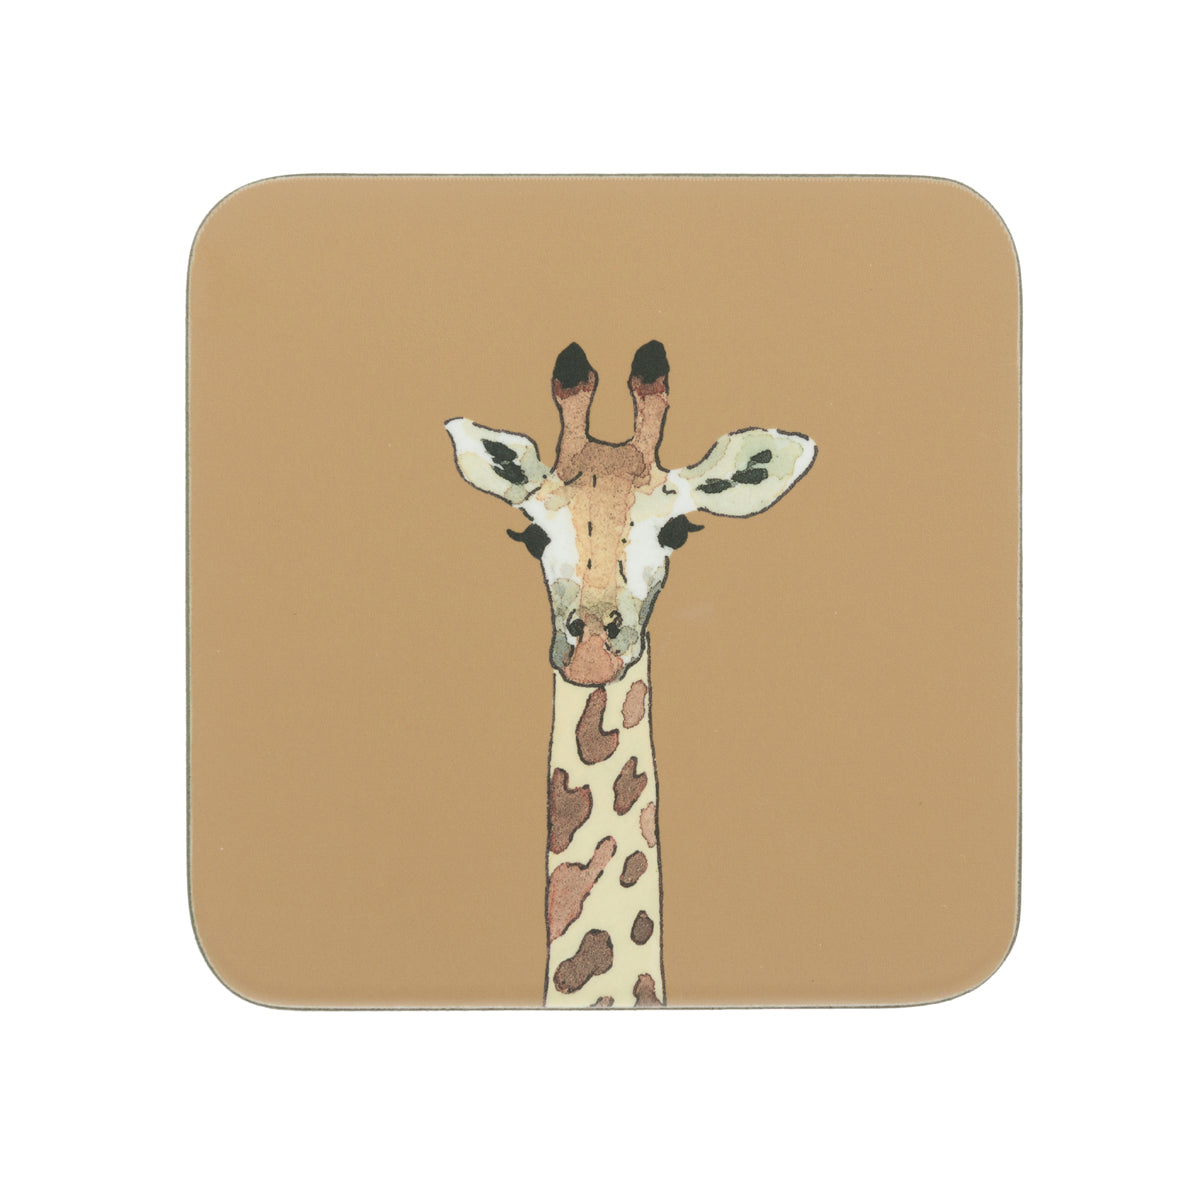 Giraffe Coasters (Set of 4) by Sophie Allport